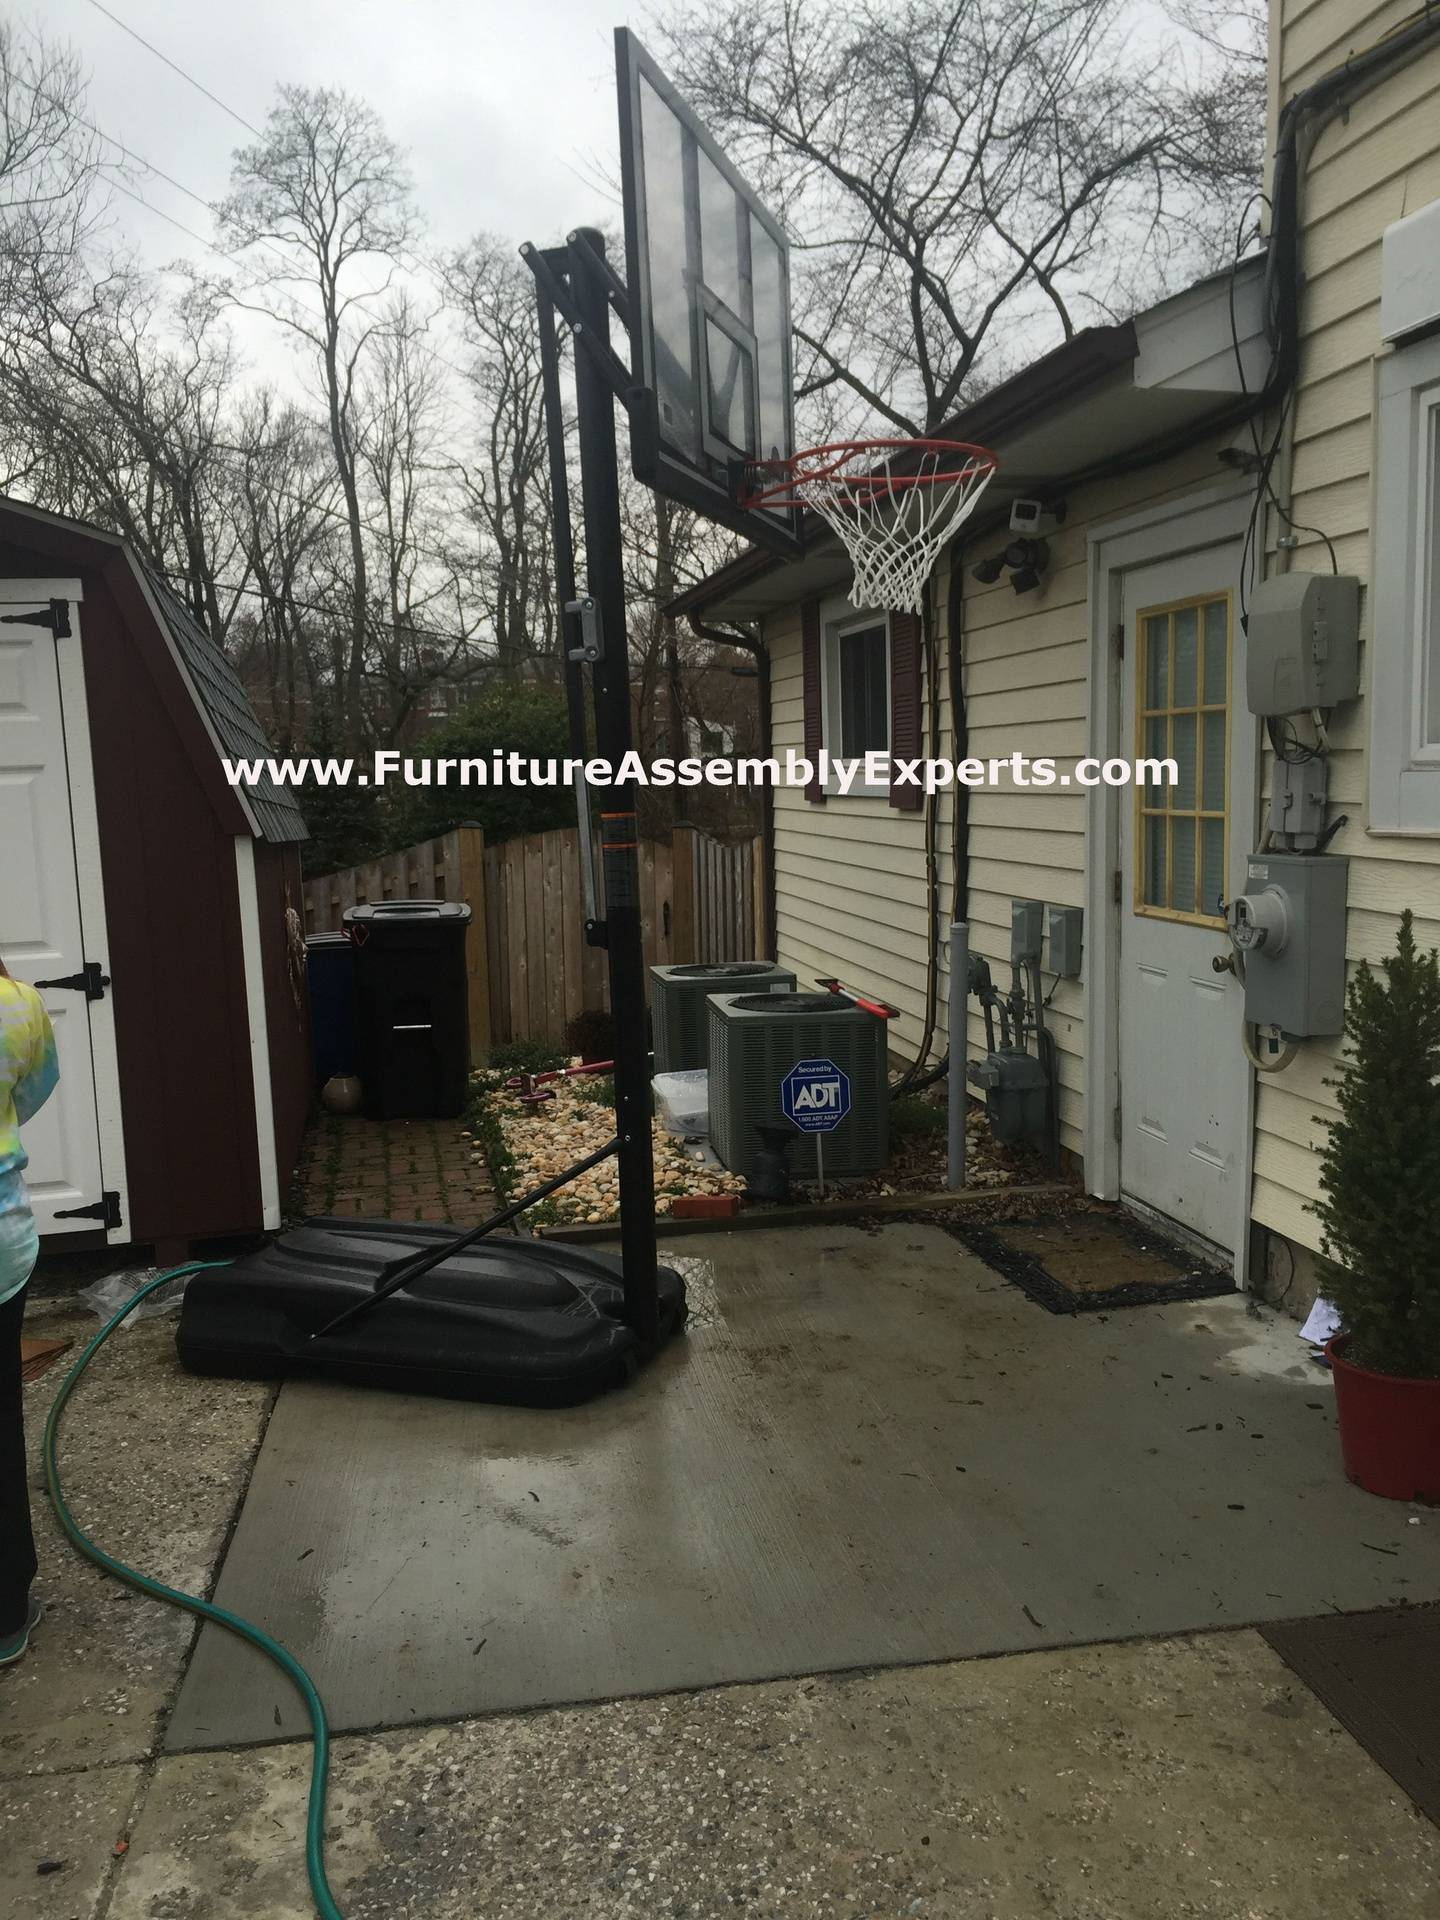 amazon portable basketball hoop assembly service in waldorf MD